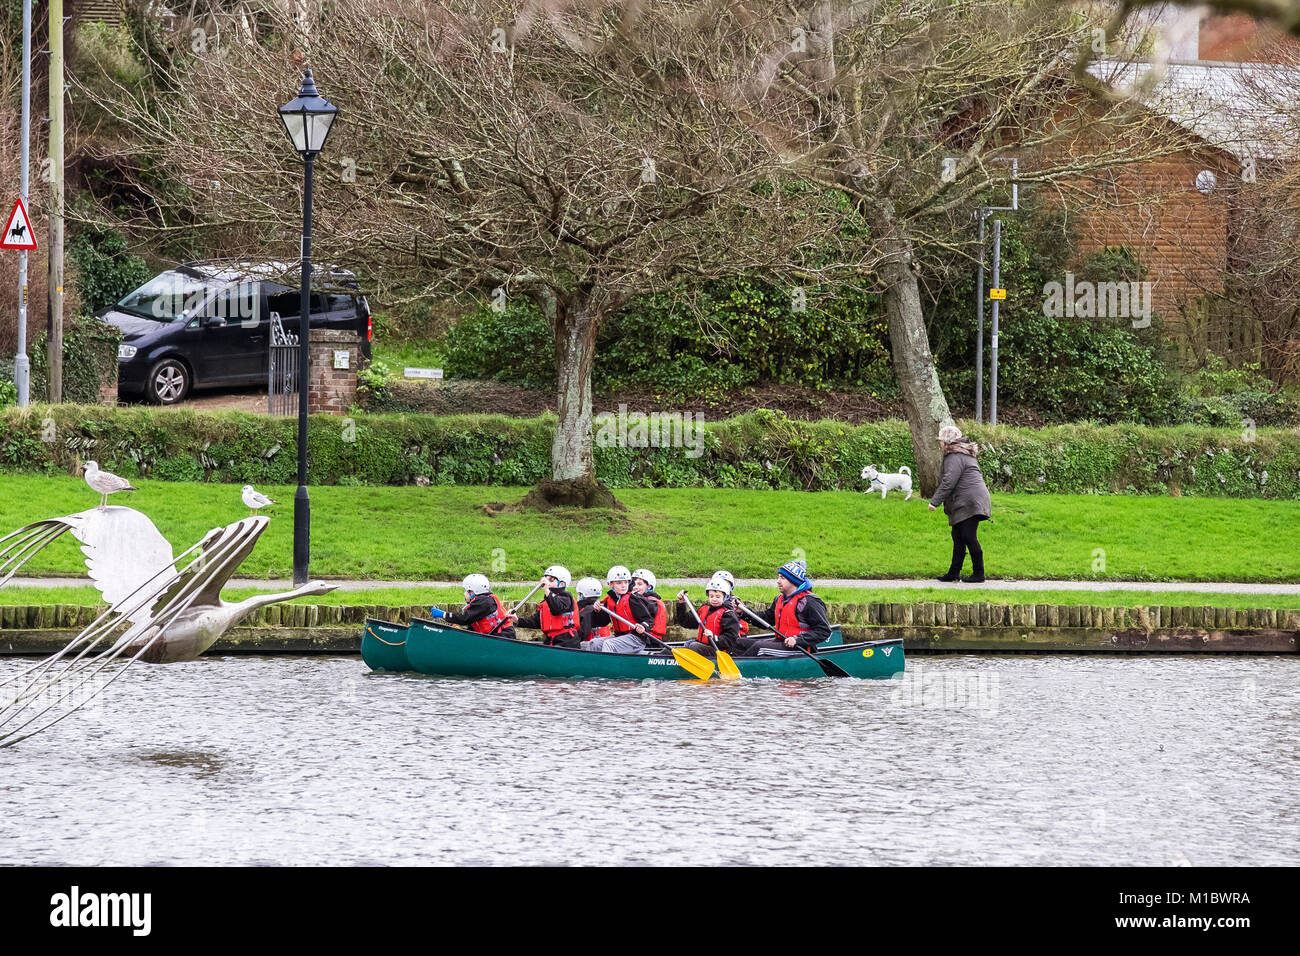 Students kayaking on Trenance Lake in Newquay Cornwall. - Stock Image